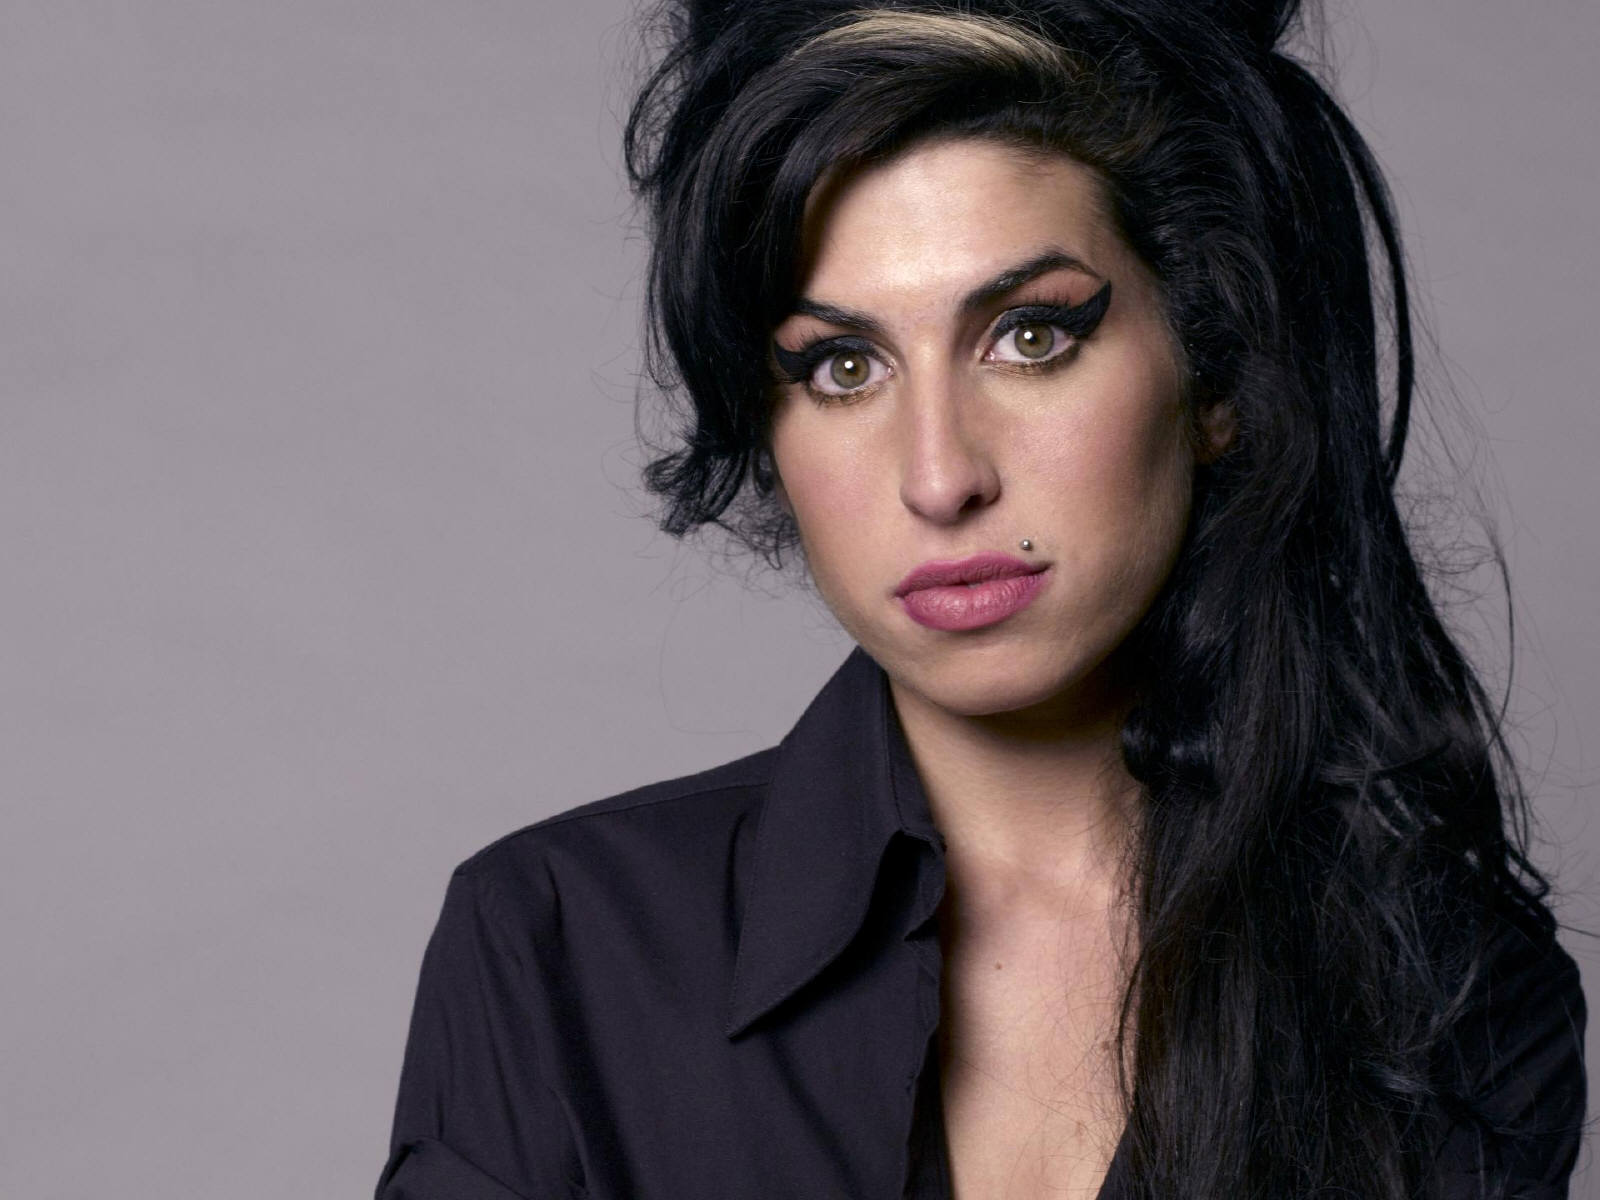 amy winehouse lyricsamy winehouse – back to black, amy winehouse скачать, amy winehouse слушать, amy winehouse valerie, amy winehouse back to black lyrics, amy winehouse rehab скачать, amy winehouse back to black mp3, amy winehouse in my bed, amy winehouse wiki, amy winehouse love is a losing game, amy winehouse — the girl from ipanema, amy winehouse i'm no good, amy winehouse stronger than me, amy winehouse фильм, amy winehouse песни, amy winehouse rehab перевод, amy winehouse 2011, amy winehouse перевод, amy winehouse lyrics, amy winehouse – rehab